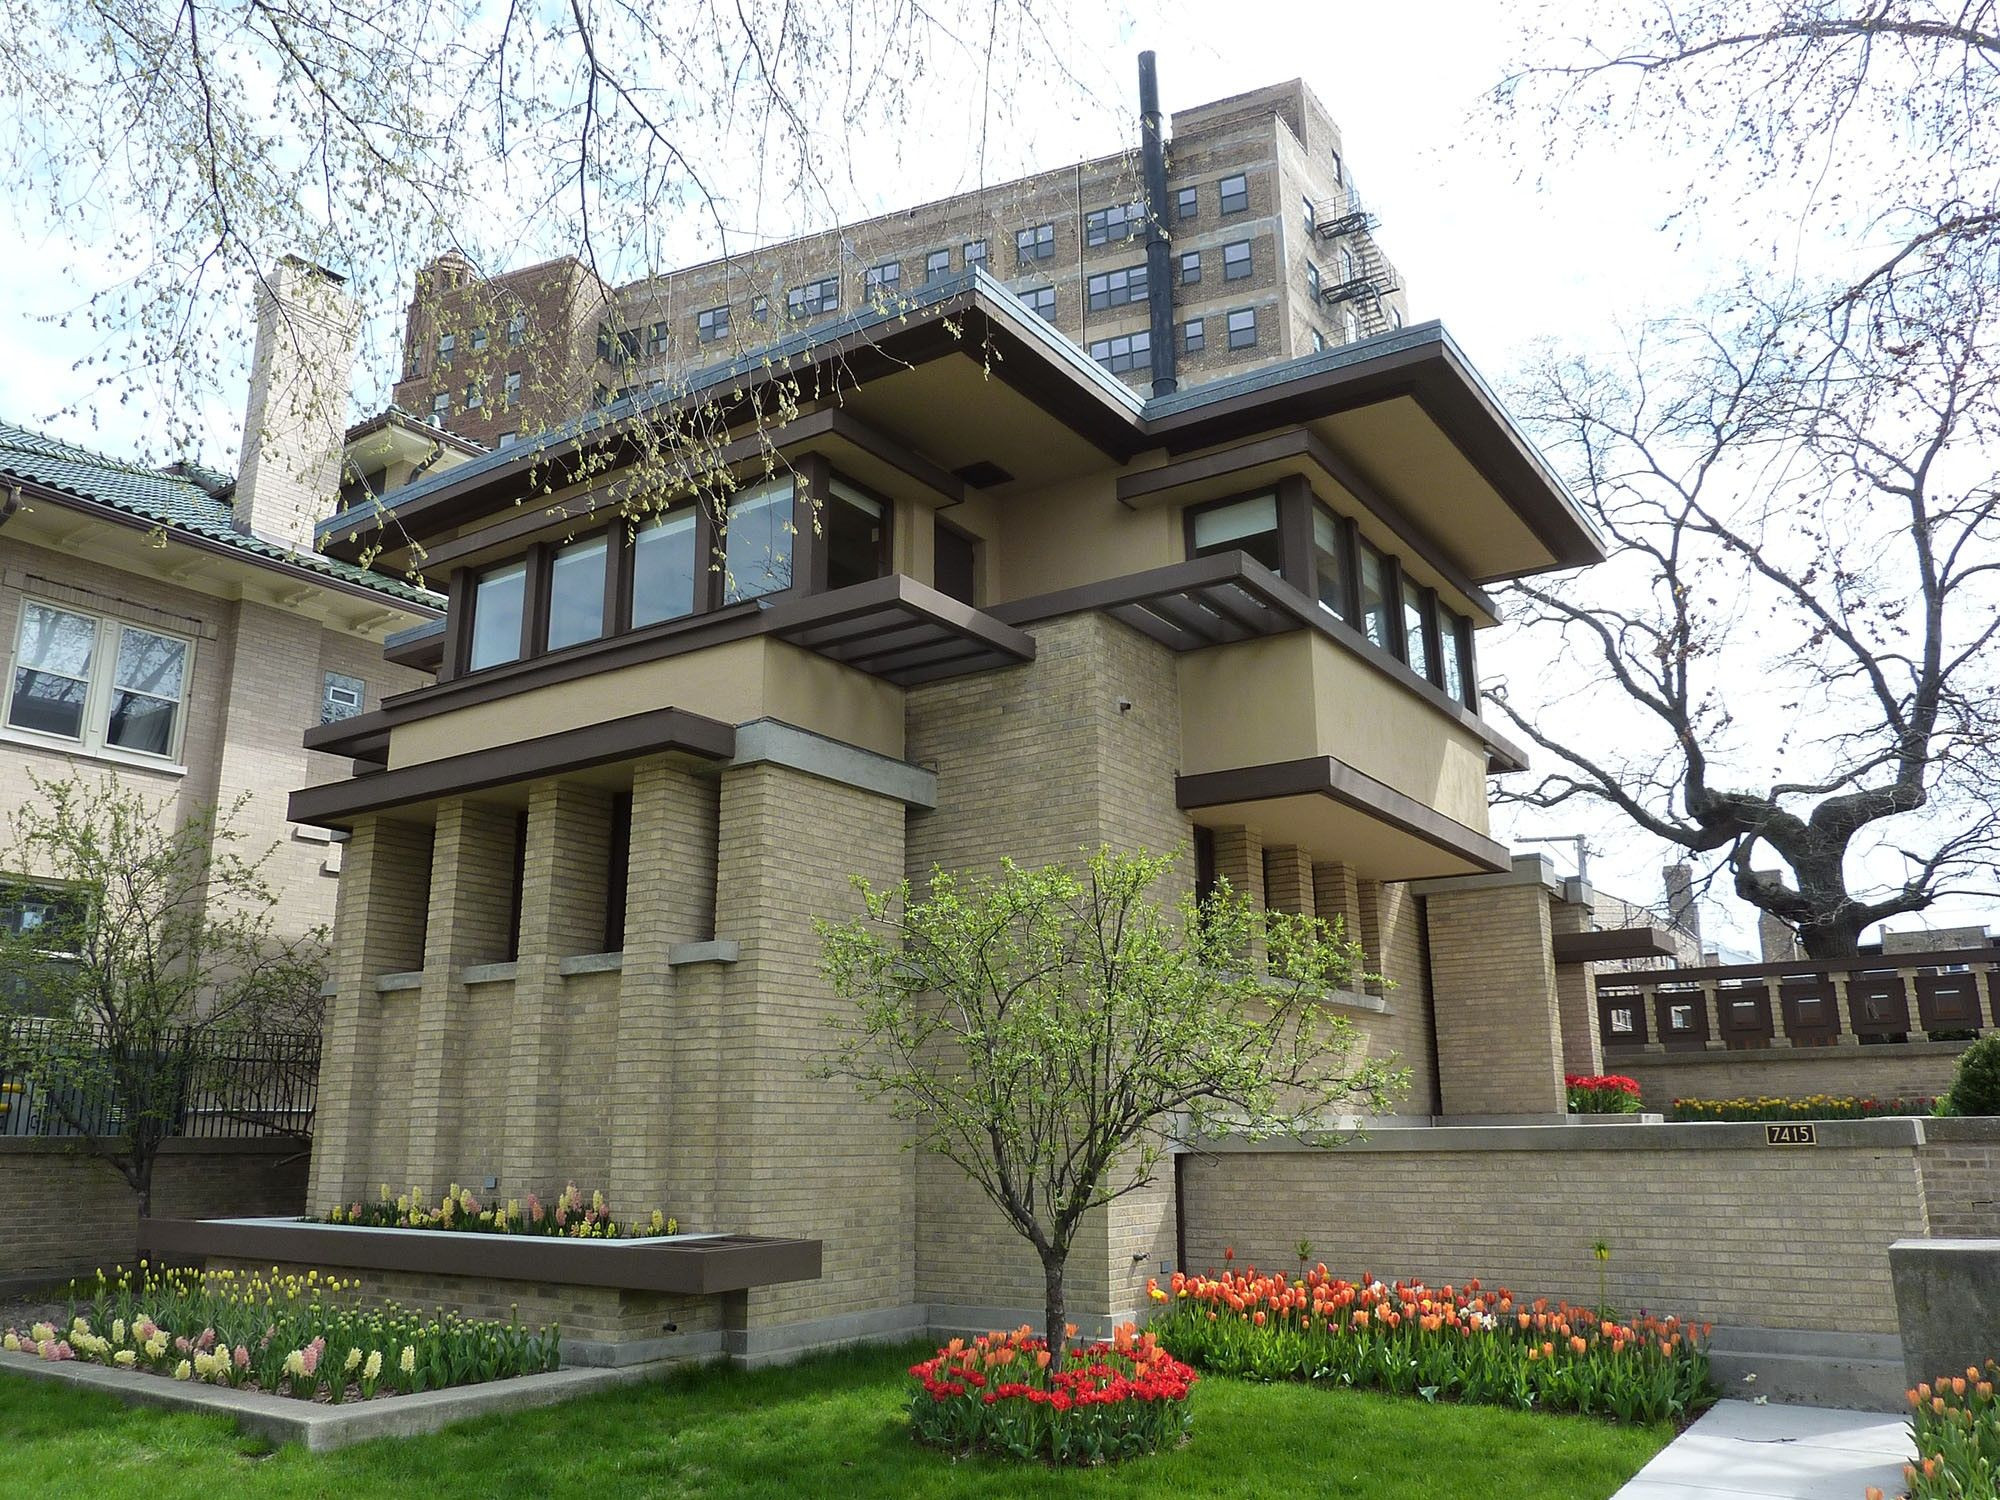 Frank lloyd wright 39 s prairie school architecture is often for Prairie style architecture